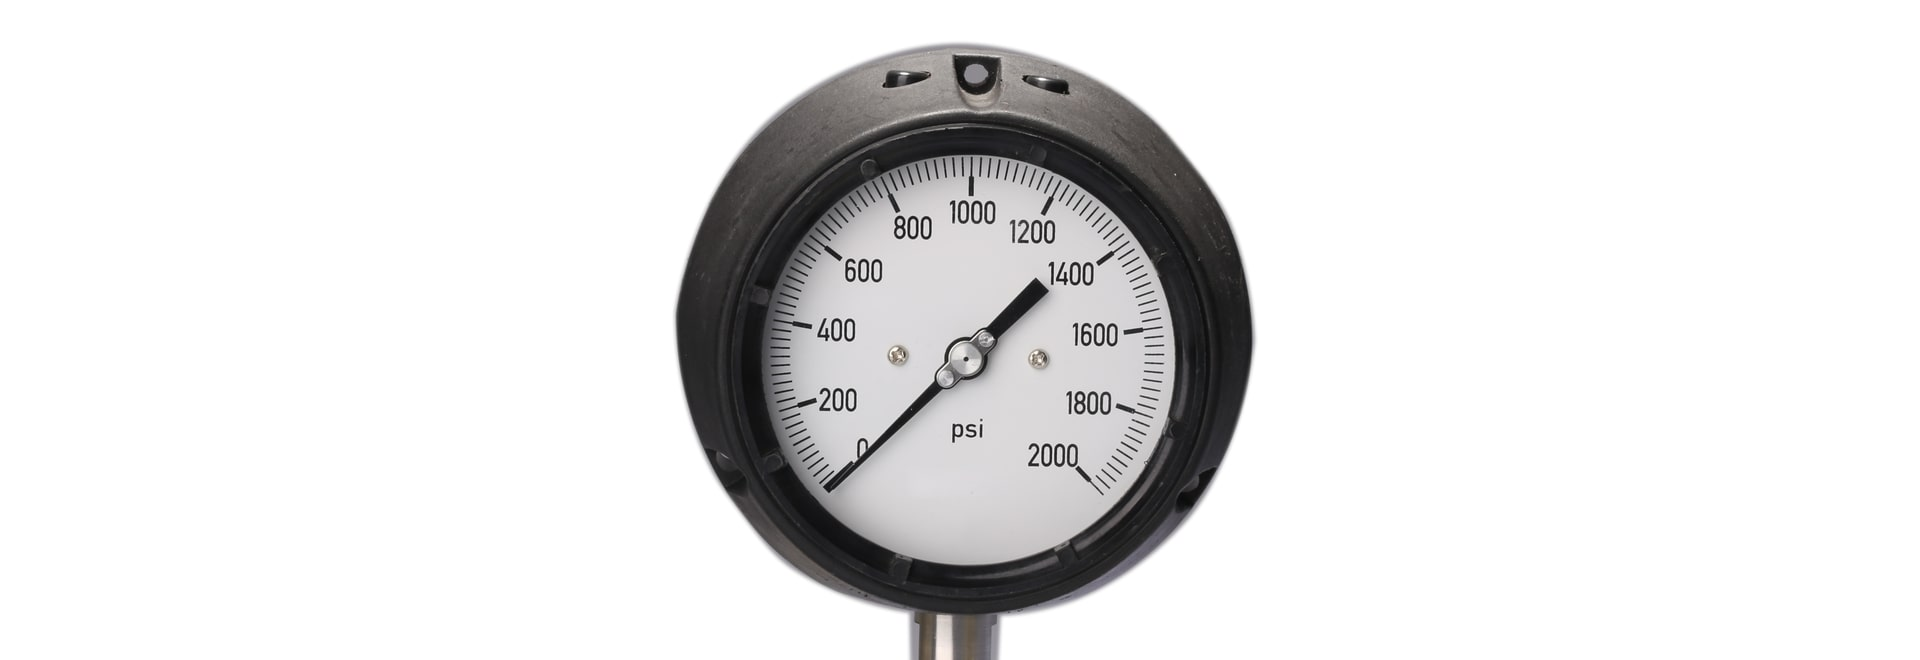 The classification of the pressure gauge